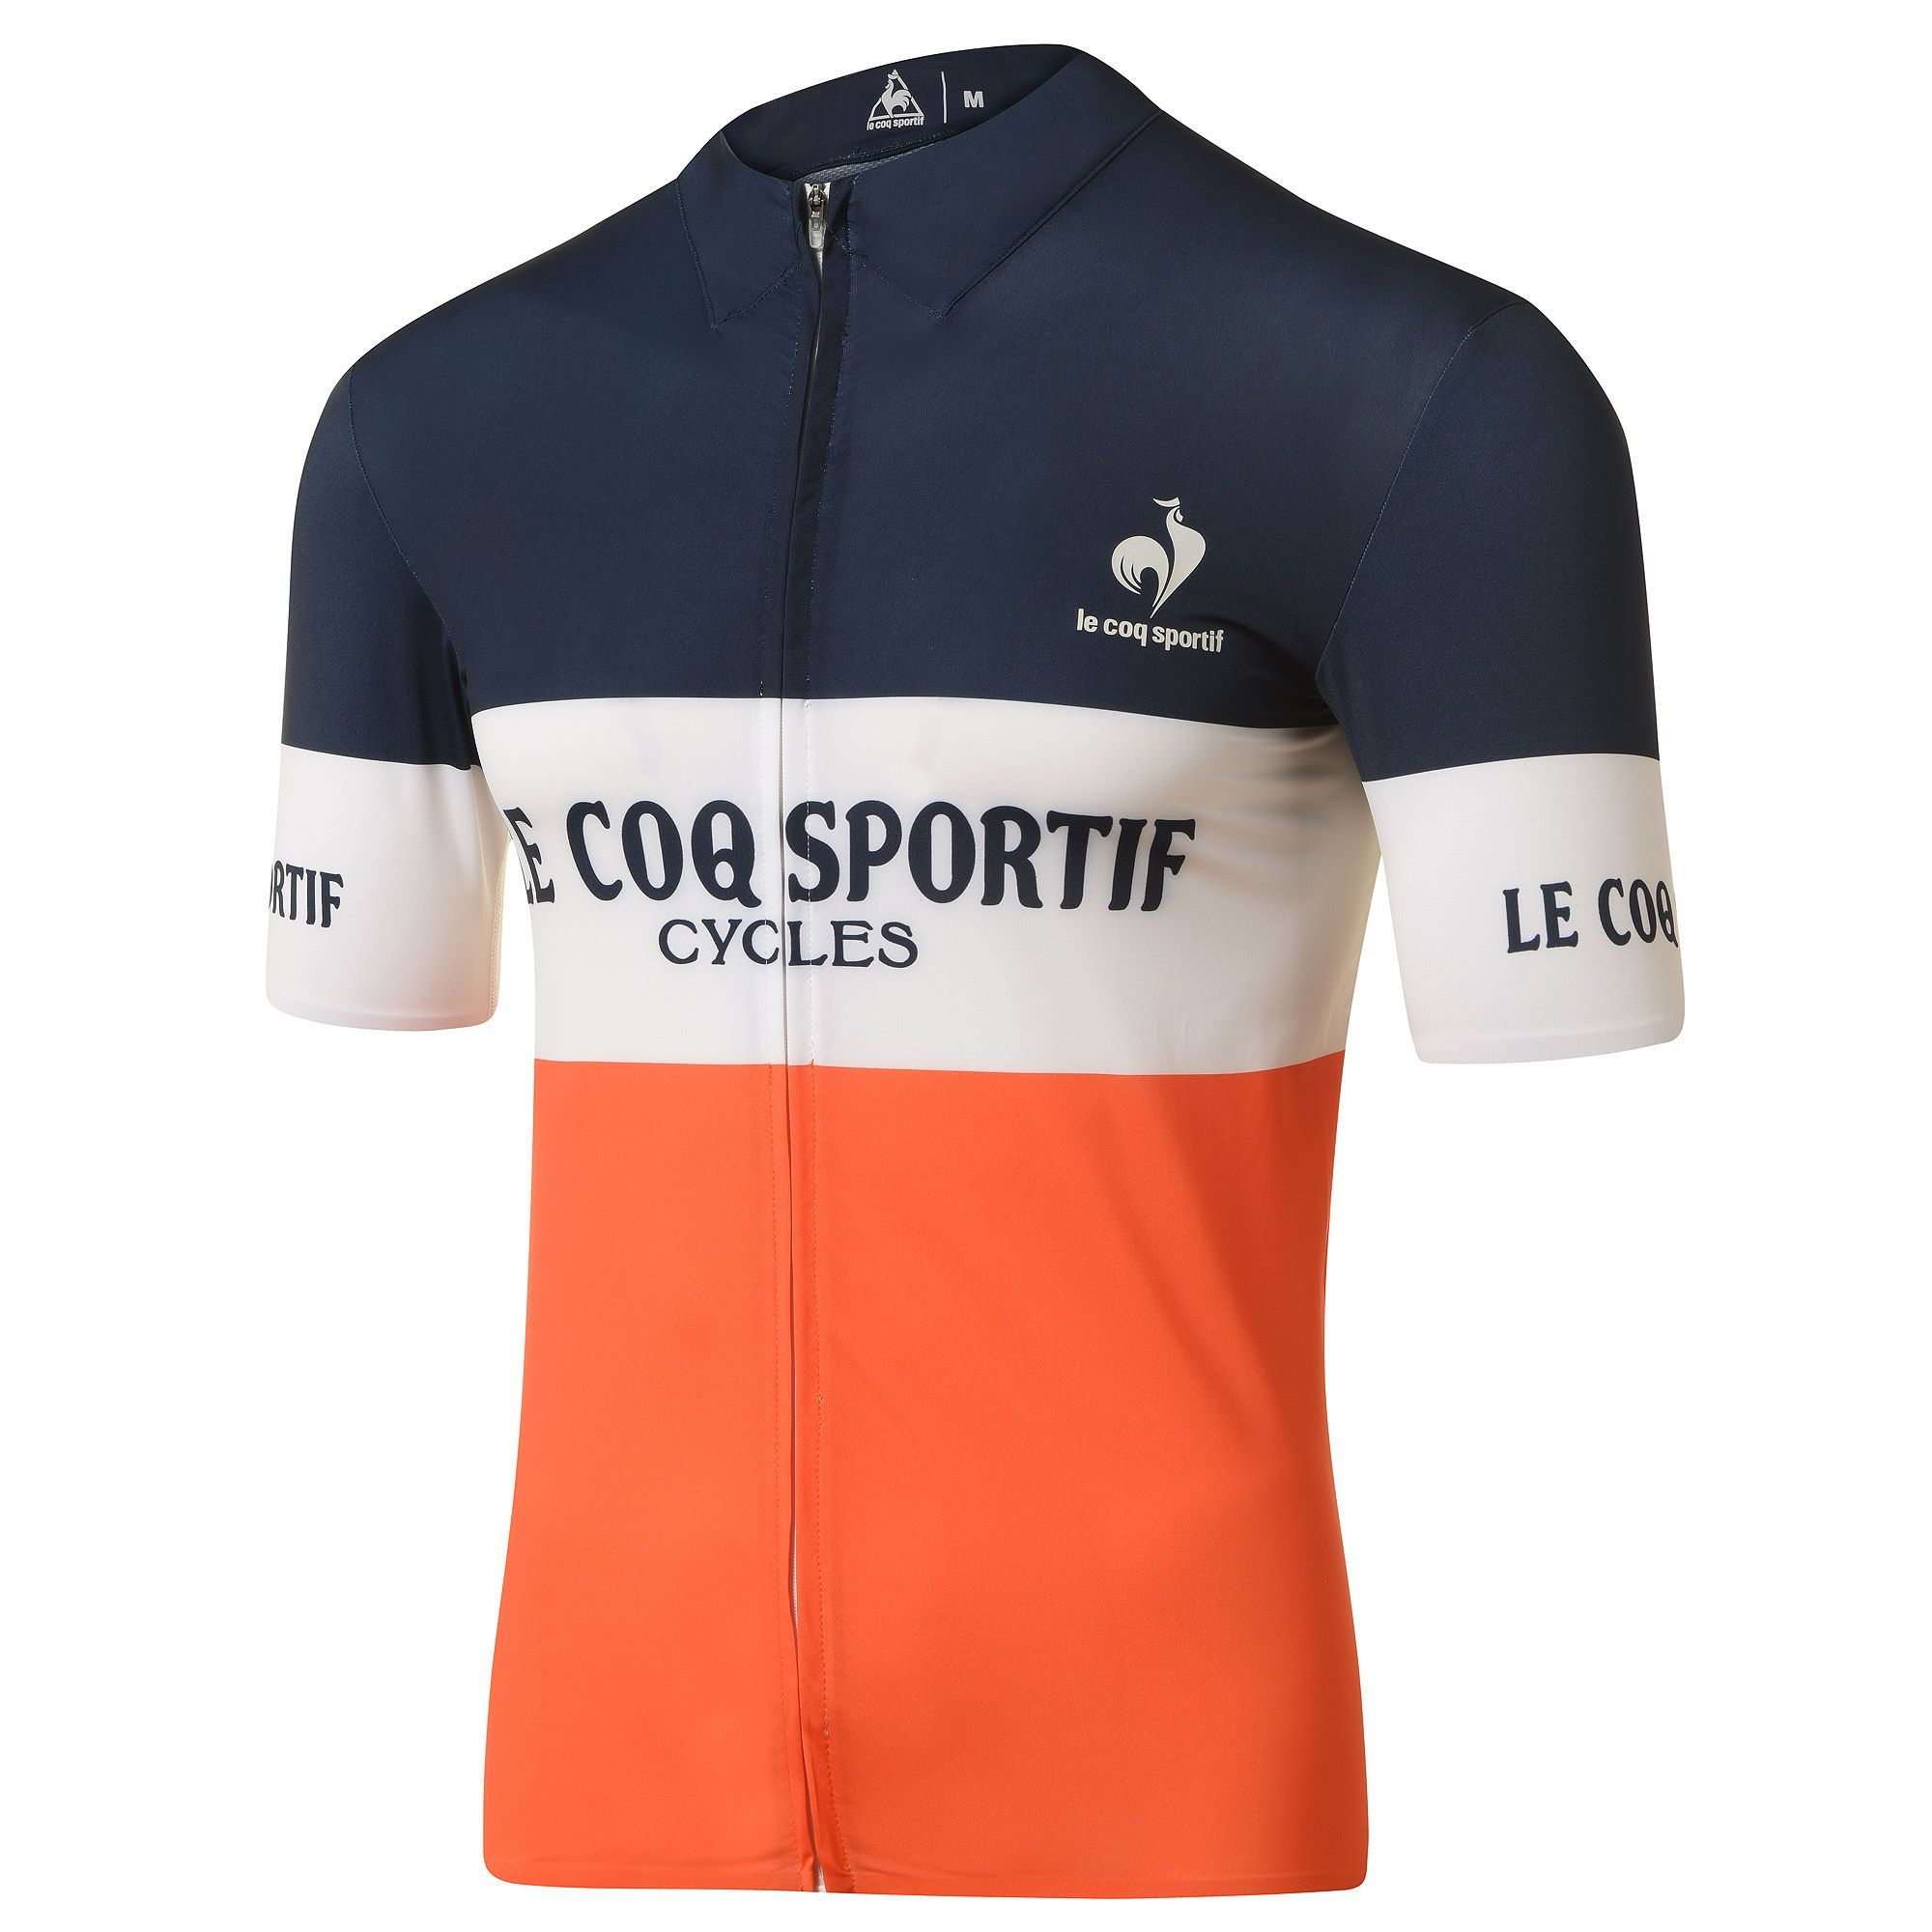 Le Coq Sportif Ares Short Sleeve Jersey Jerseys In 2020 Cycling Jersey Design Cycling Outfit Bike Jersey Design